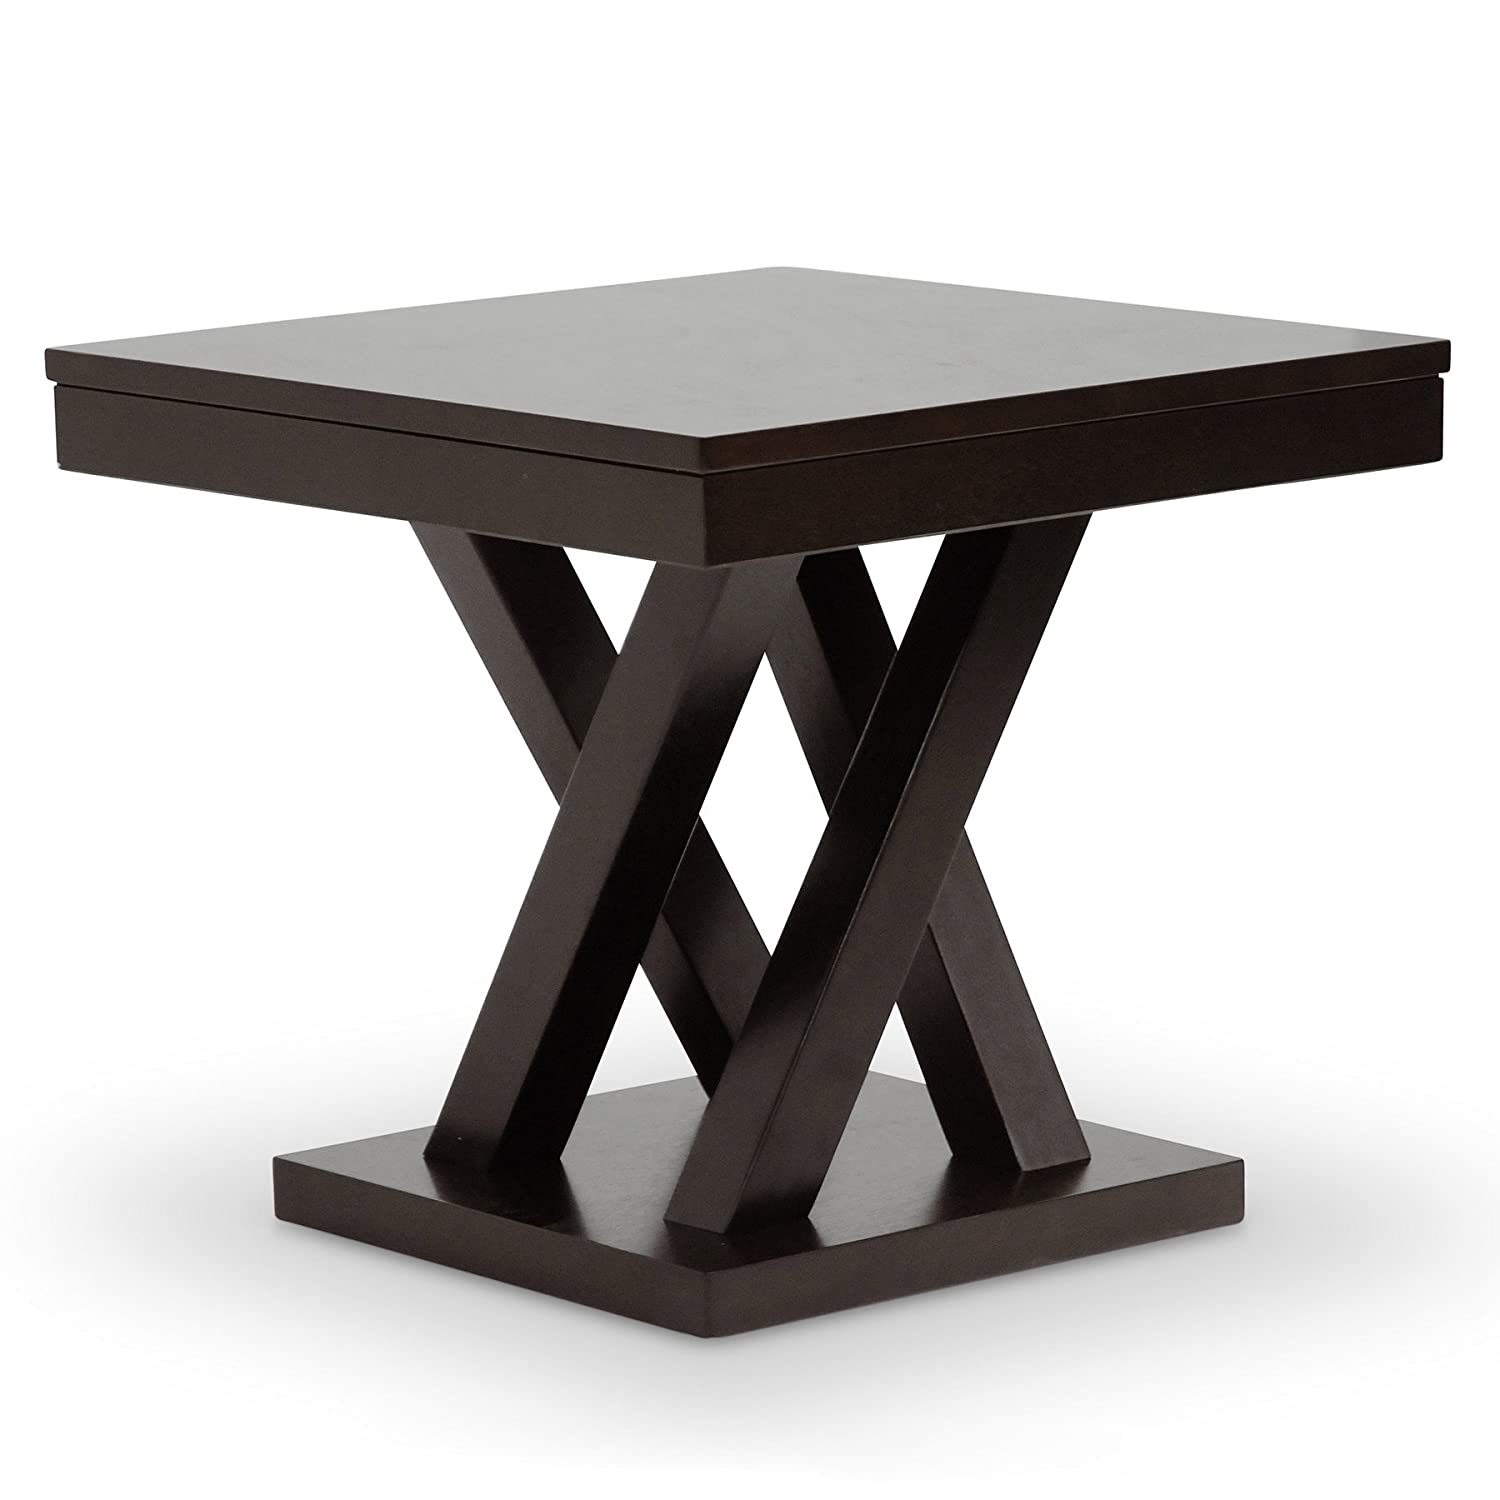 Amazon.com Baxton Studio Everdon Modern End Table Dark Brown Kitchen \u0026 Dining  sc 1 st  Amazon.com & Amazon.com: Baxton Studio Everdon Modern End Table Dark Brown ...